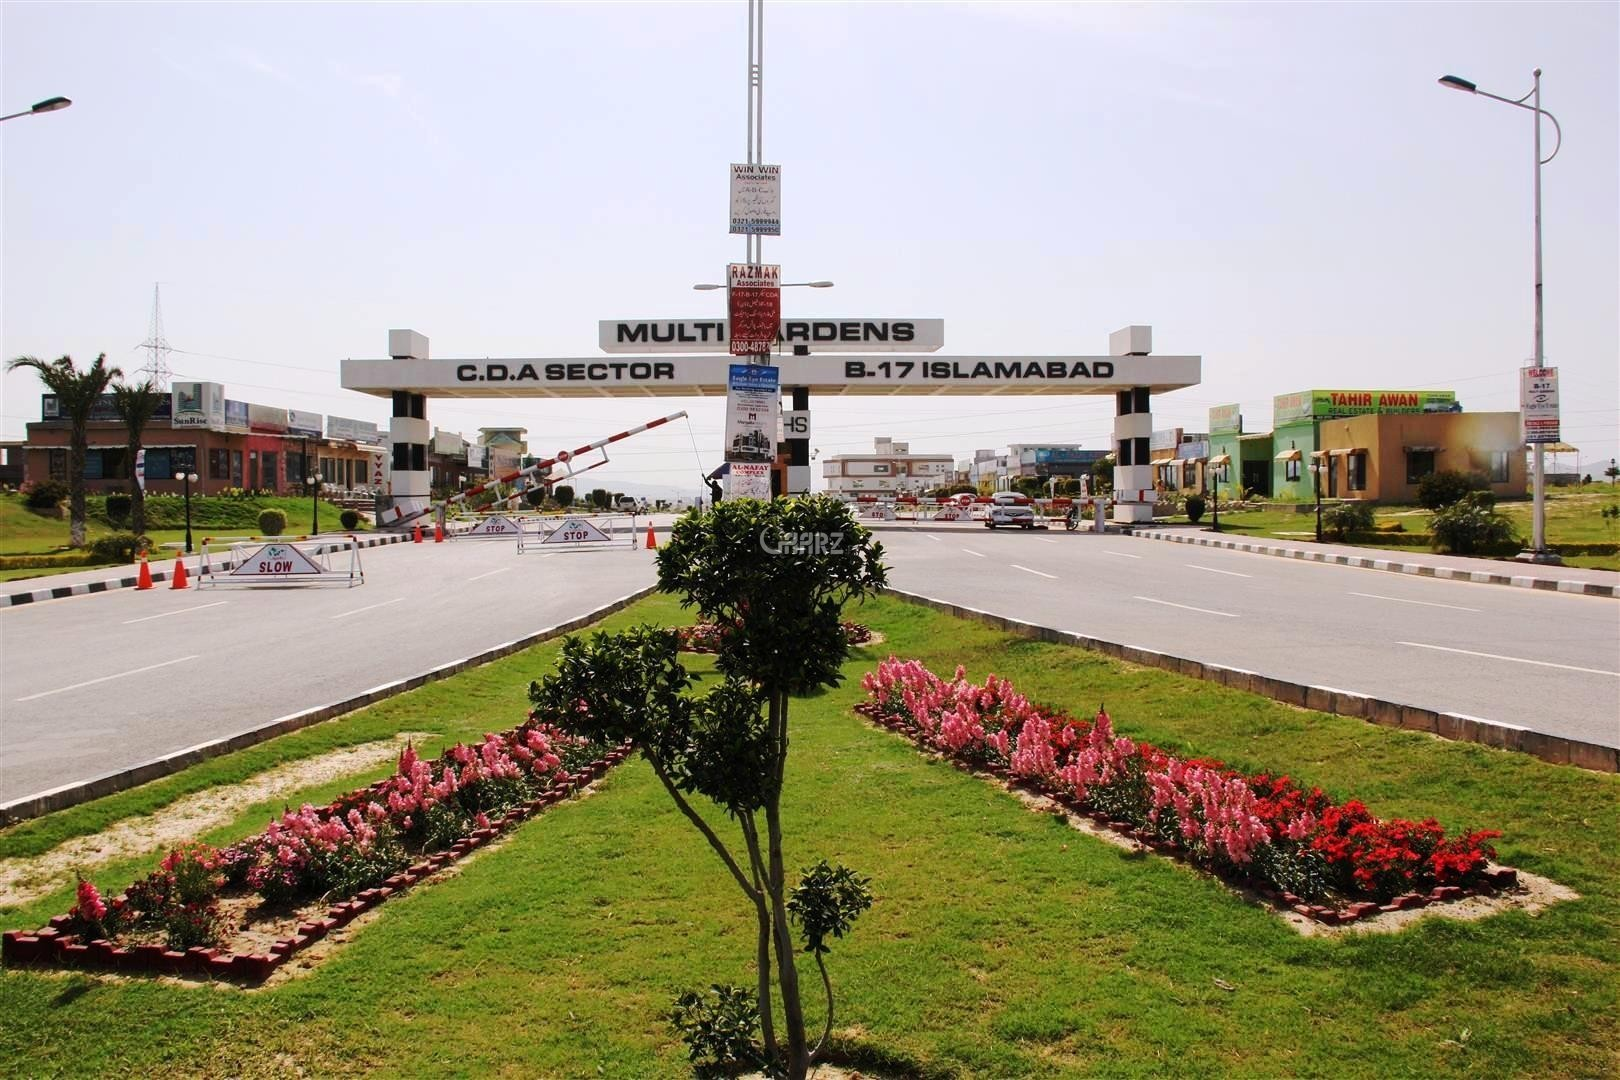 12 Marla Plot in B-17, Islamabad for Sale